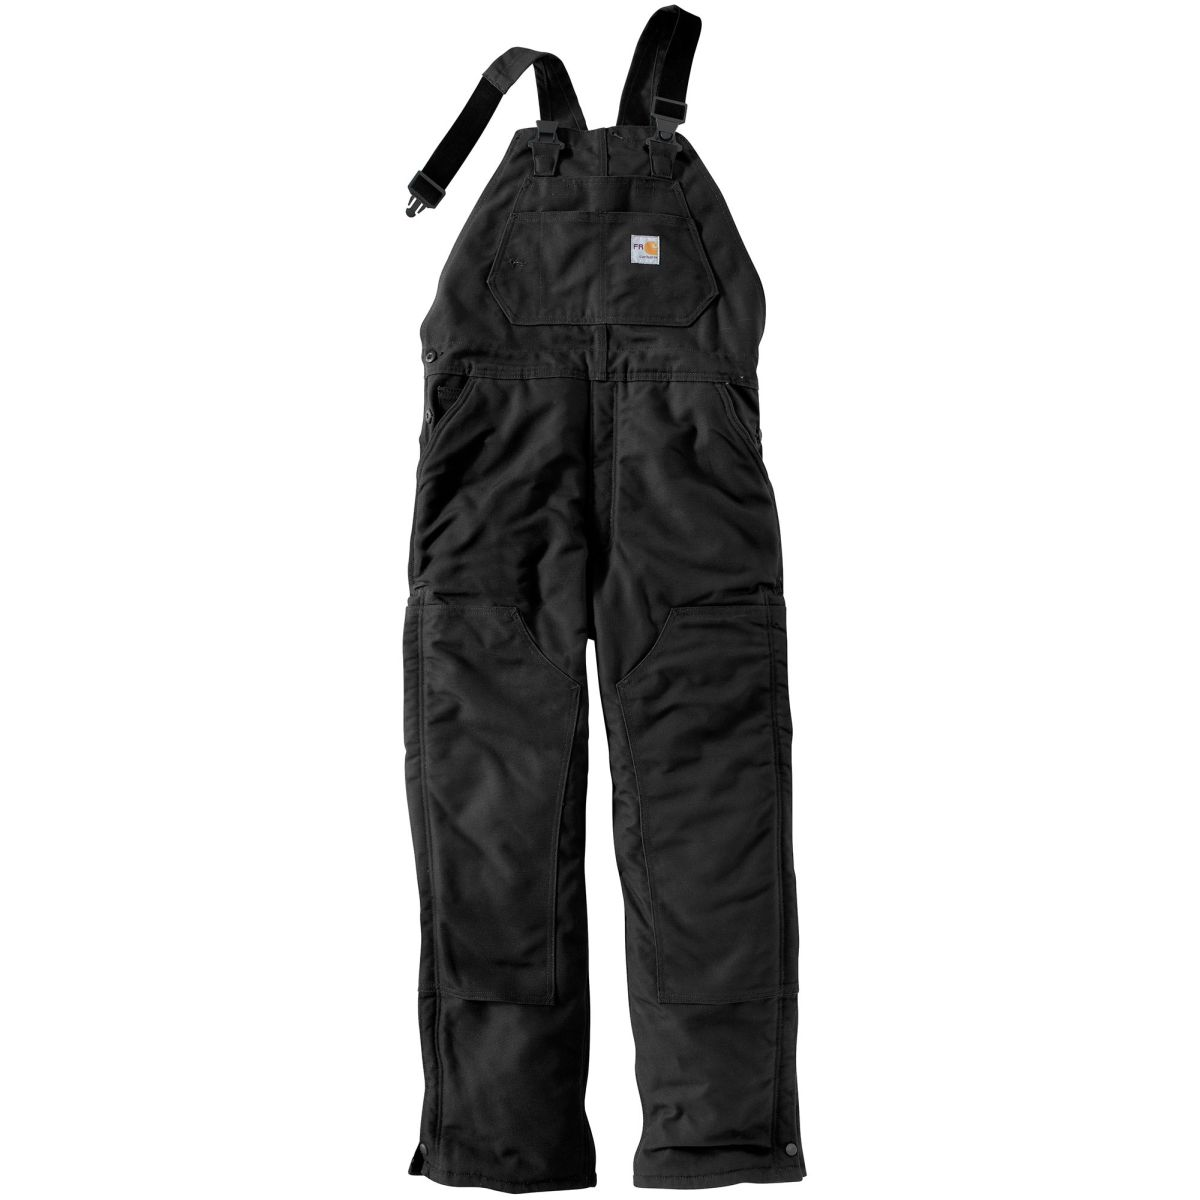 101627 Mens Flame-Resistant Duck Bib Overall-Carhartt